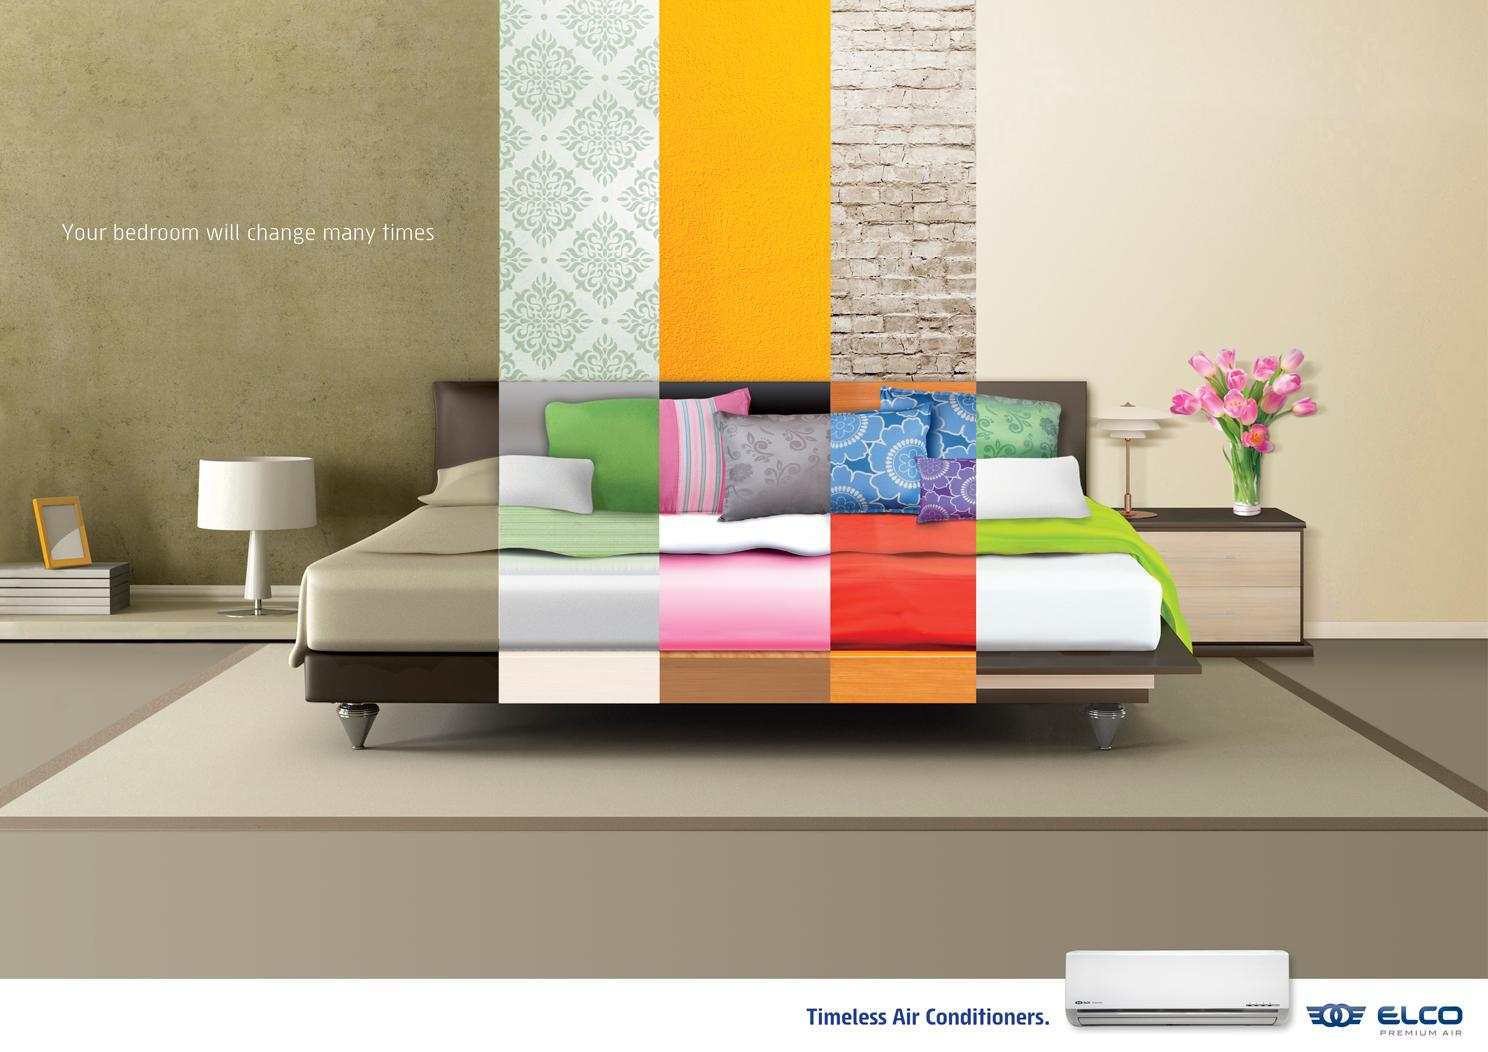 ELCO Premium Air Print Ad -  Bedroom